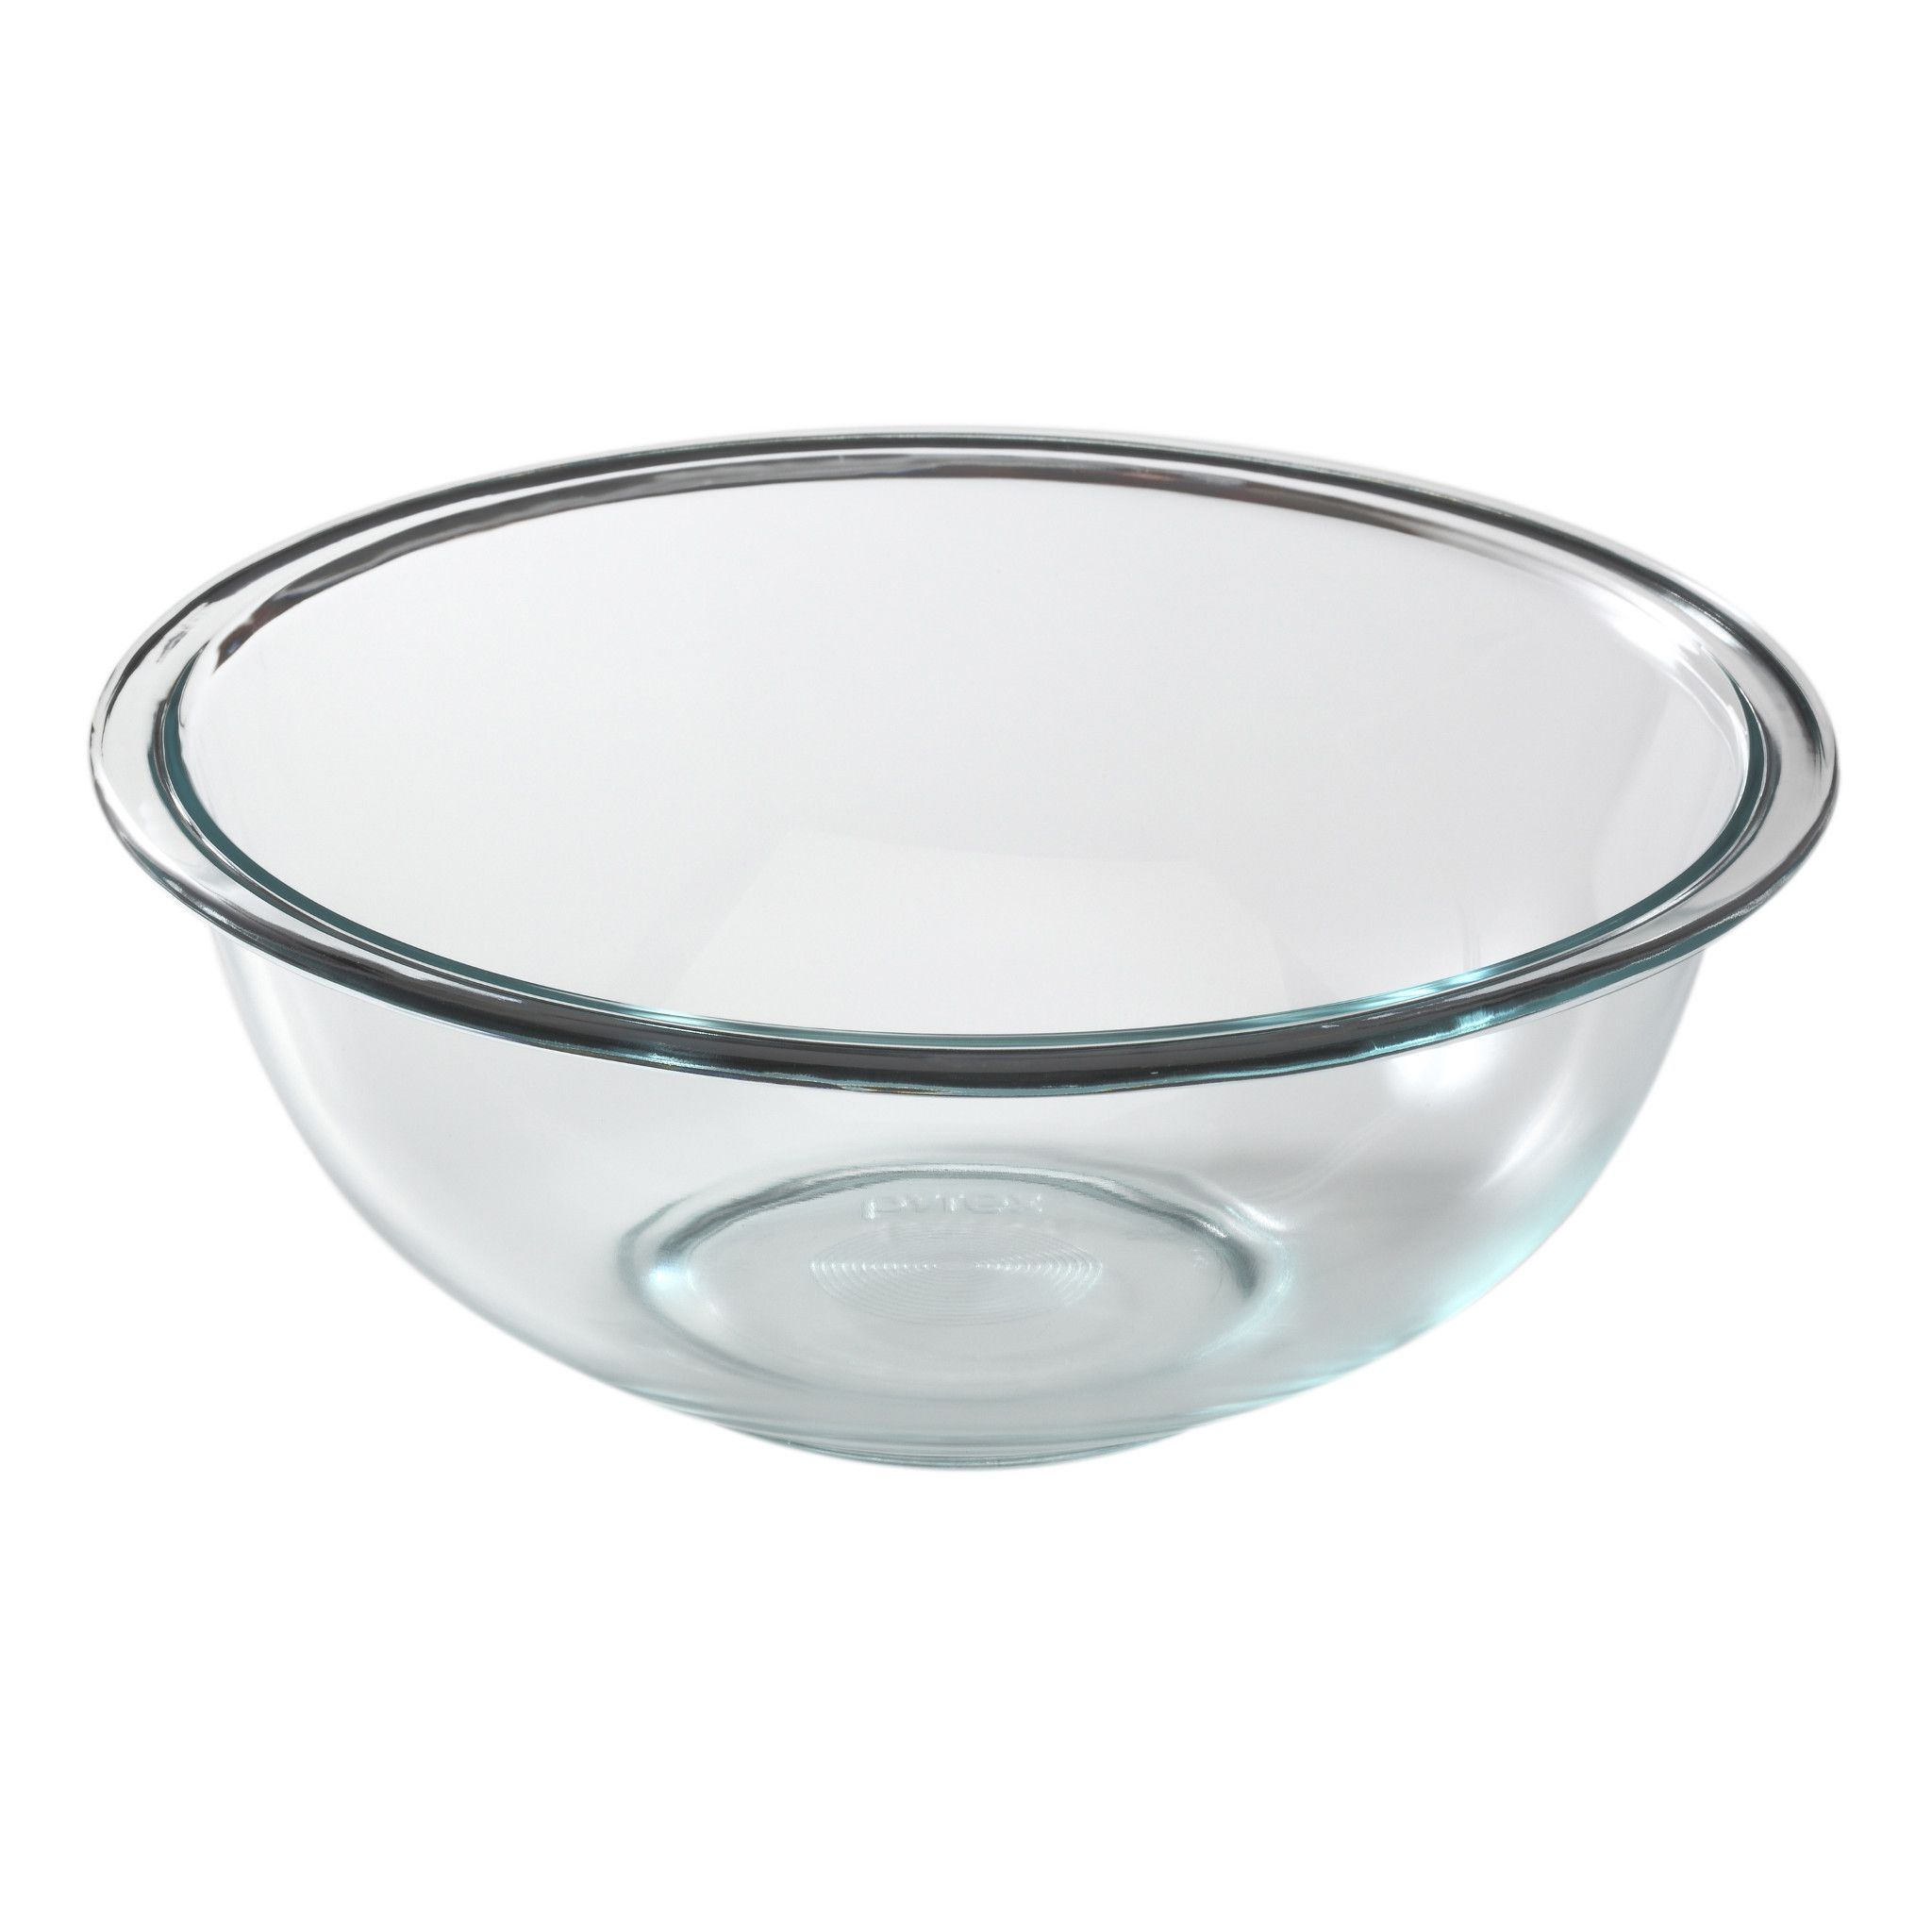 2.5-quart Mixing Bowl